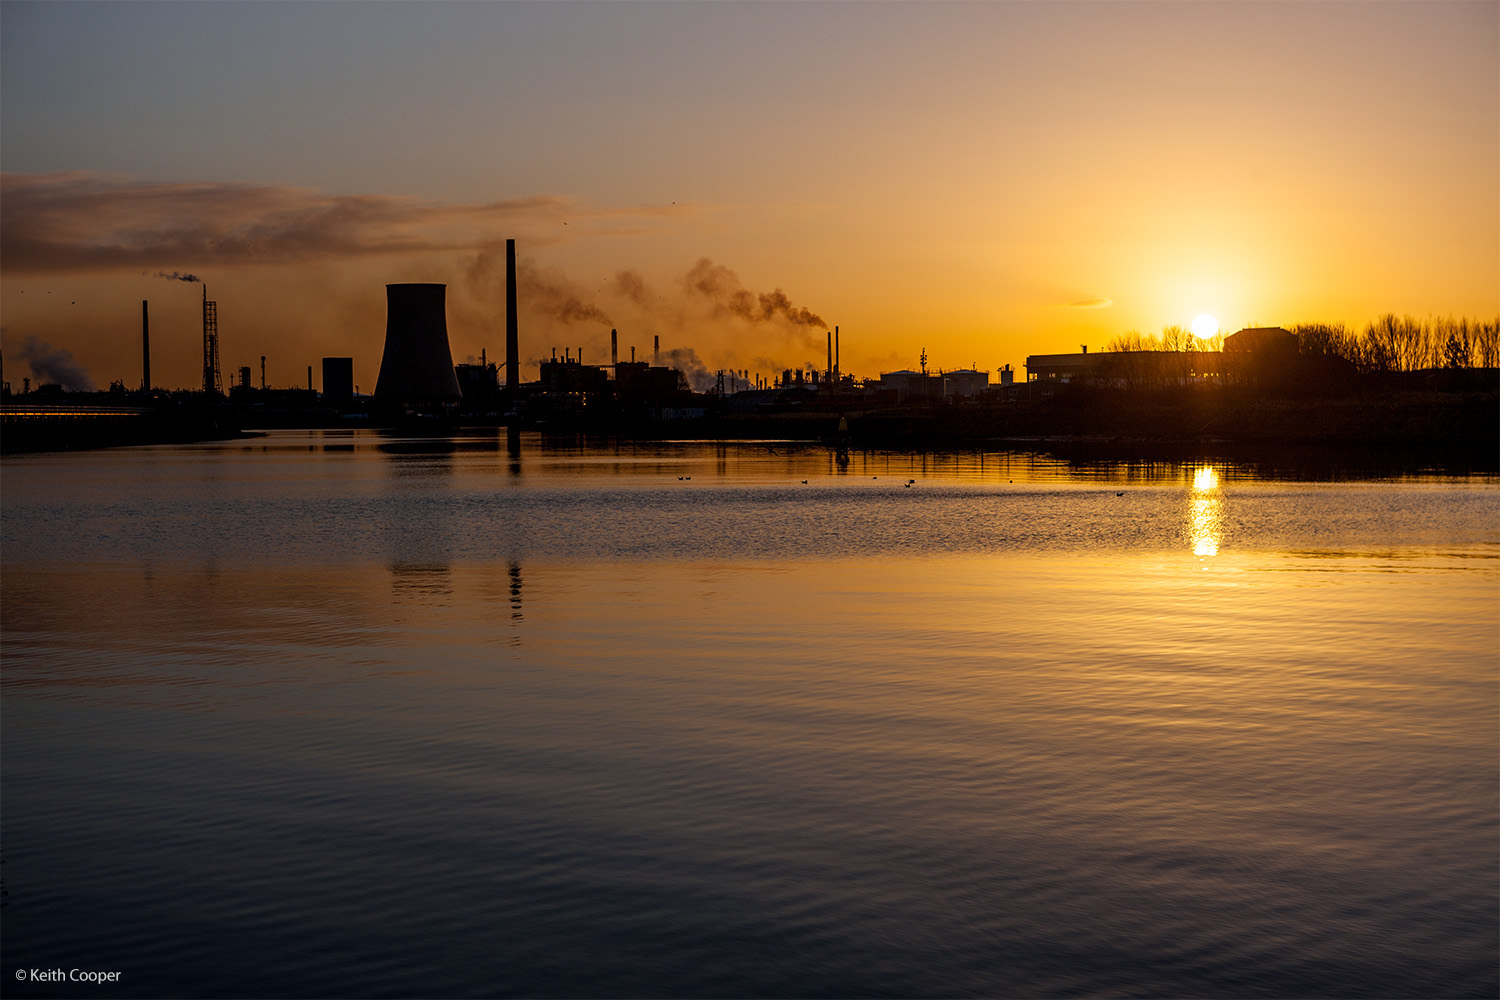 Ellesmere port refinery, silhouette at dawn